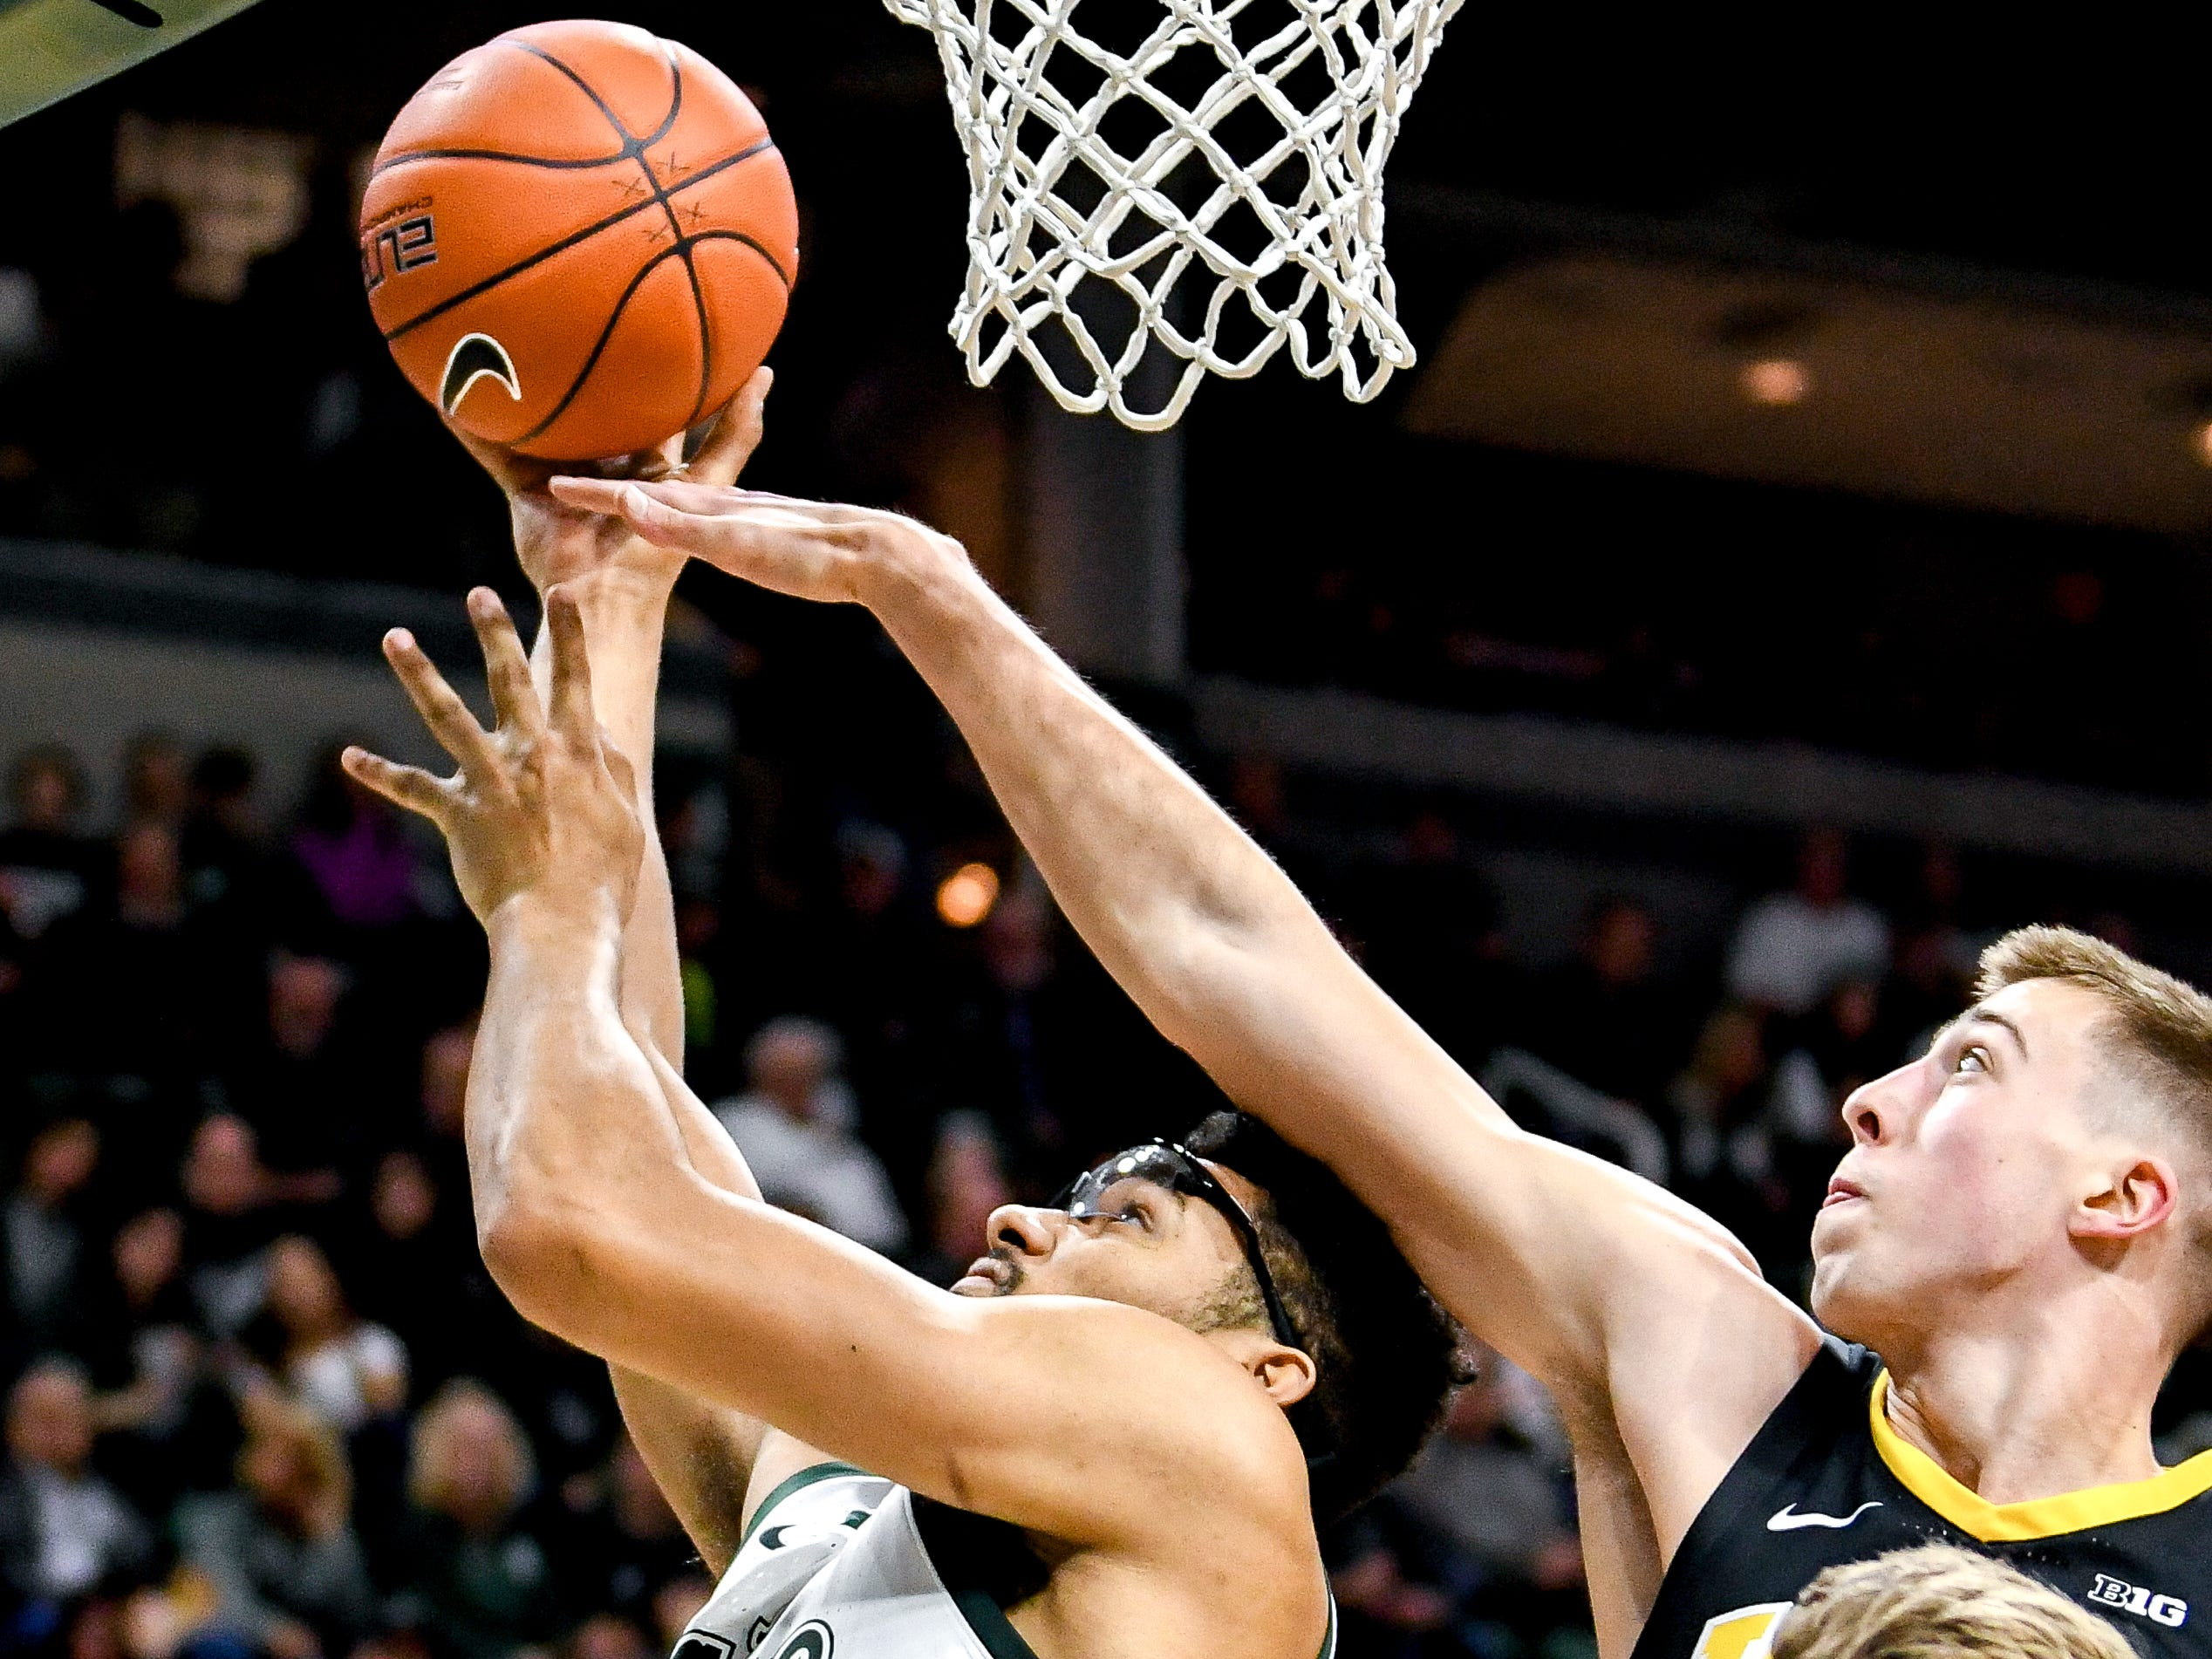 Michigan State's Kenny Goins, left, scores as Iowa's Joe Wieskamp defends during the first half on Monday, Dec. 3, 2018, at the Breslin Center in East Lansing.